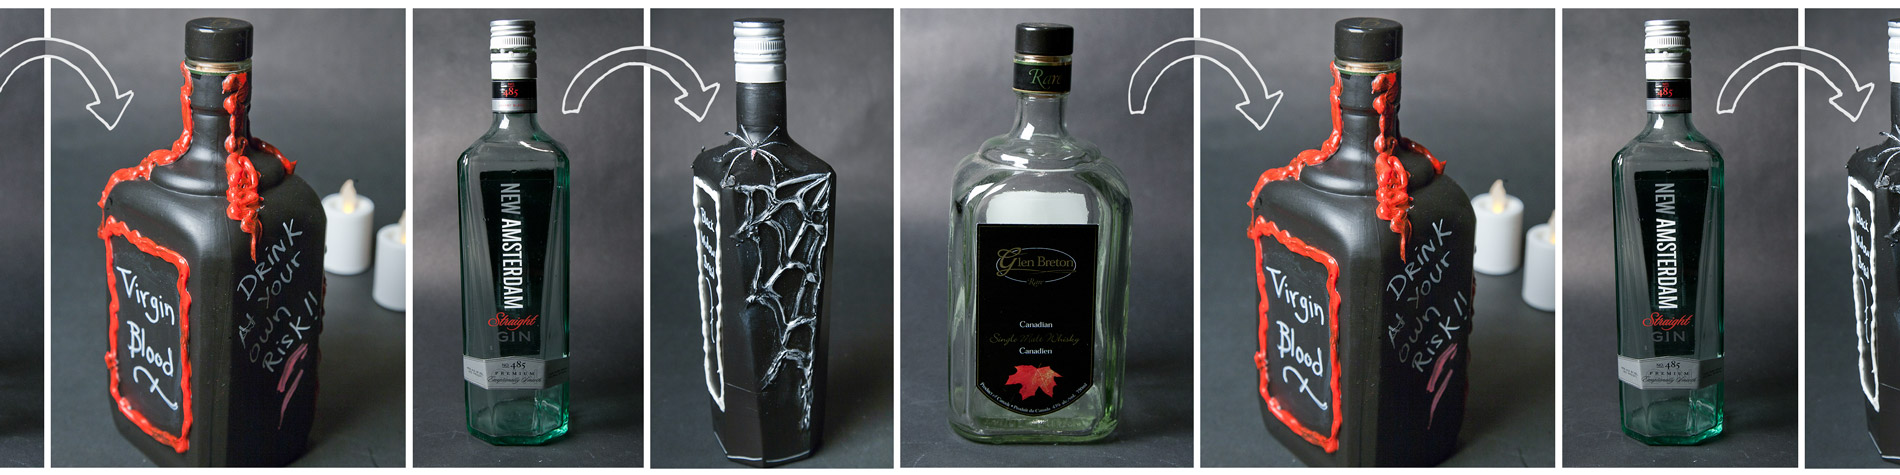 DIY Gothic Bottle Decorations Wholesale Halloween